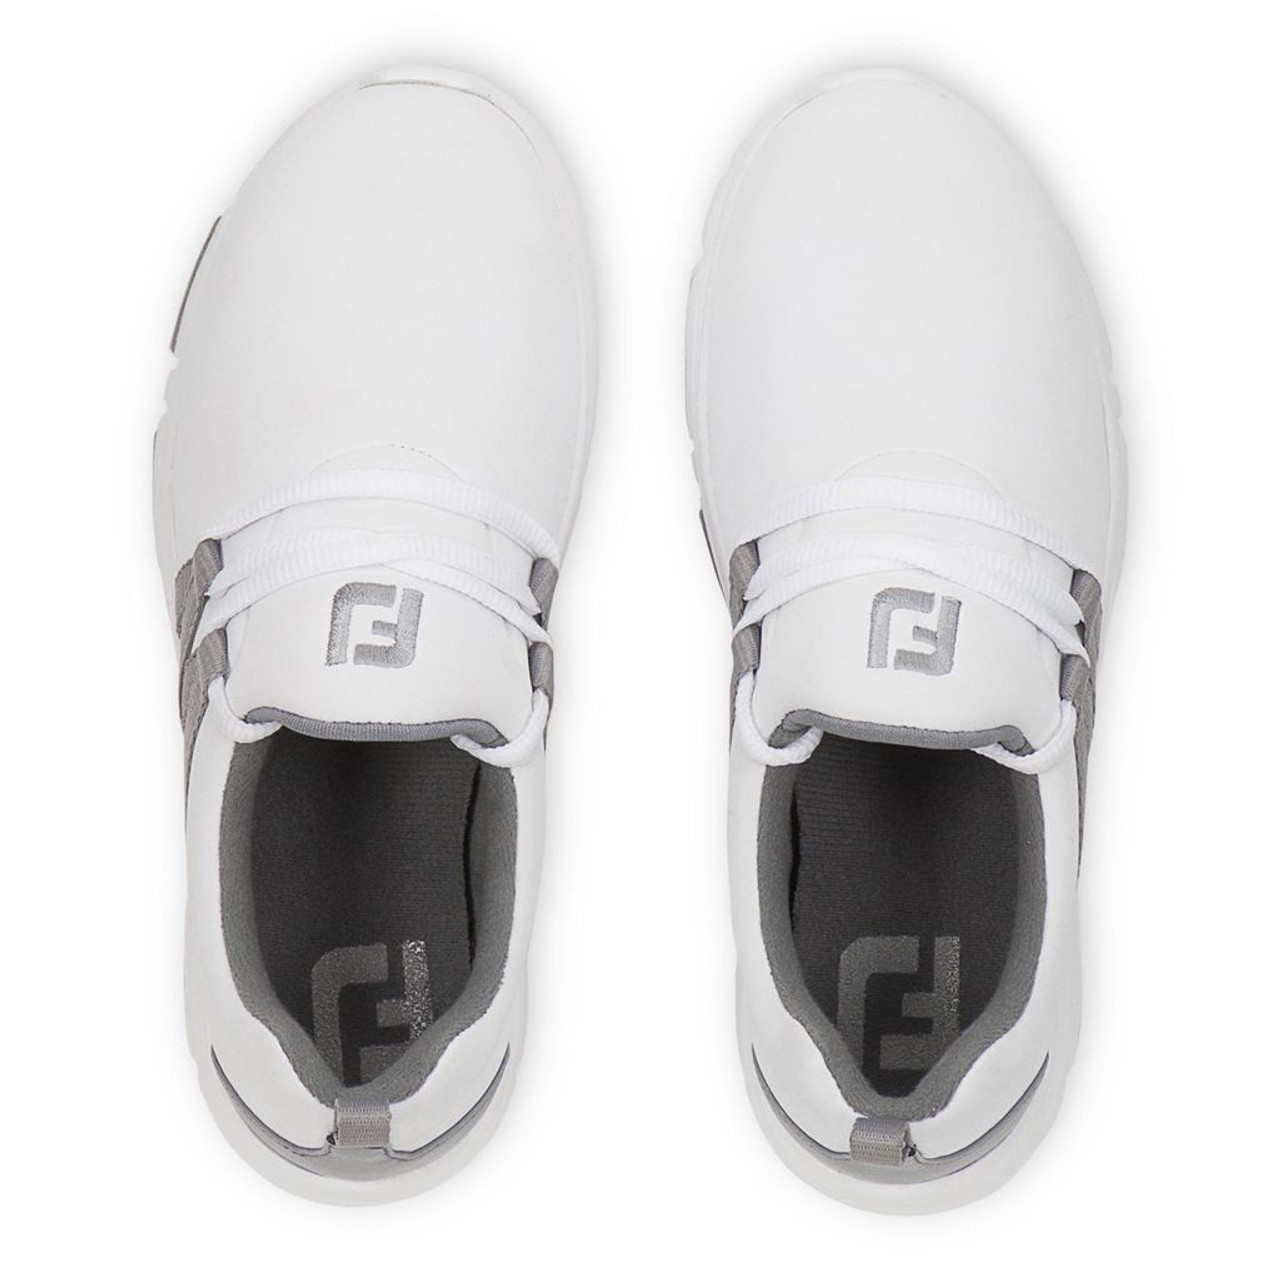 FootJoy FJ Leisure Girls Golf Shoes - White / Grey 948209)